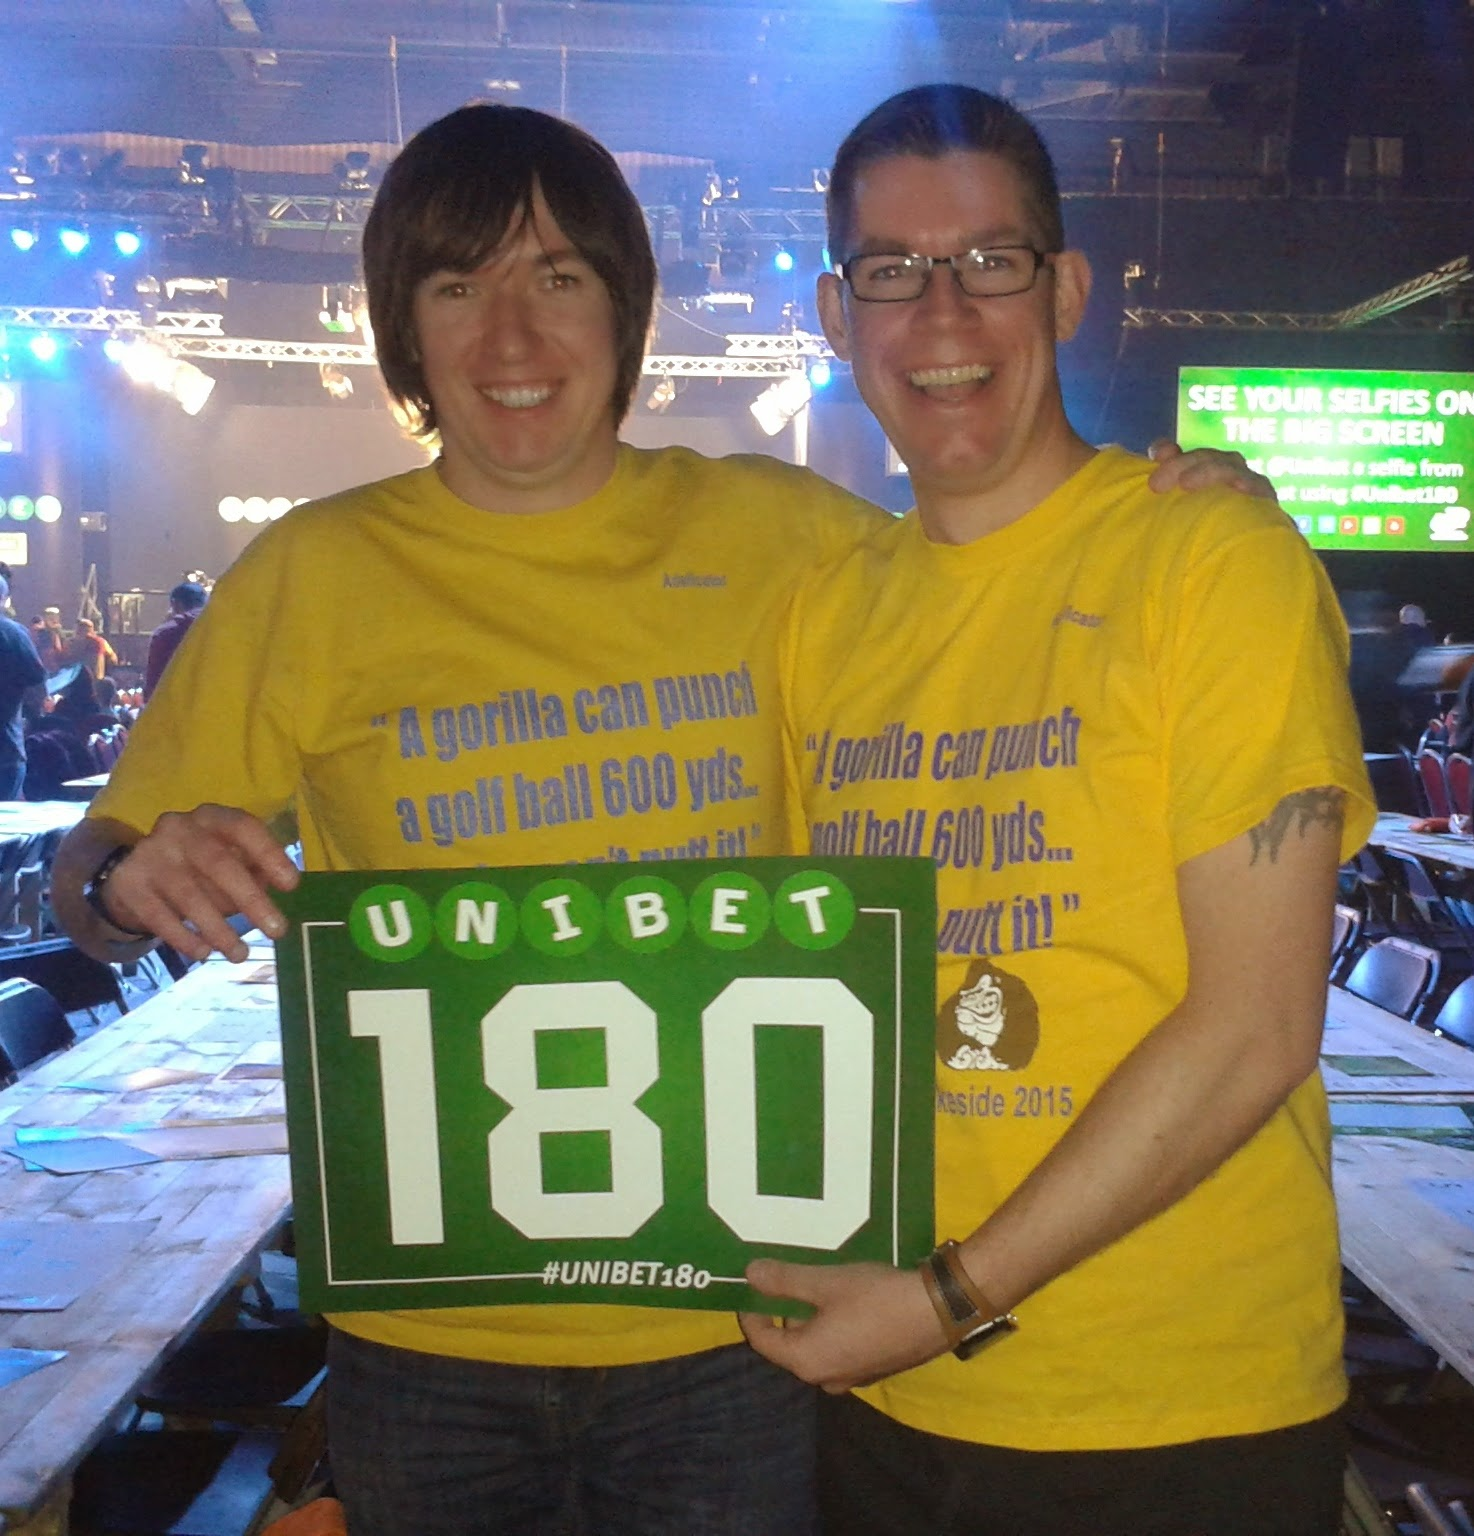 Marc 'The Roller' Bazeley and 'Squire' Richard Gottfried - Two of the Sajwani Army on manoeuvres at the PDC Unibet Darts Masters in Milton Keynes